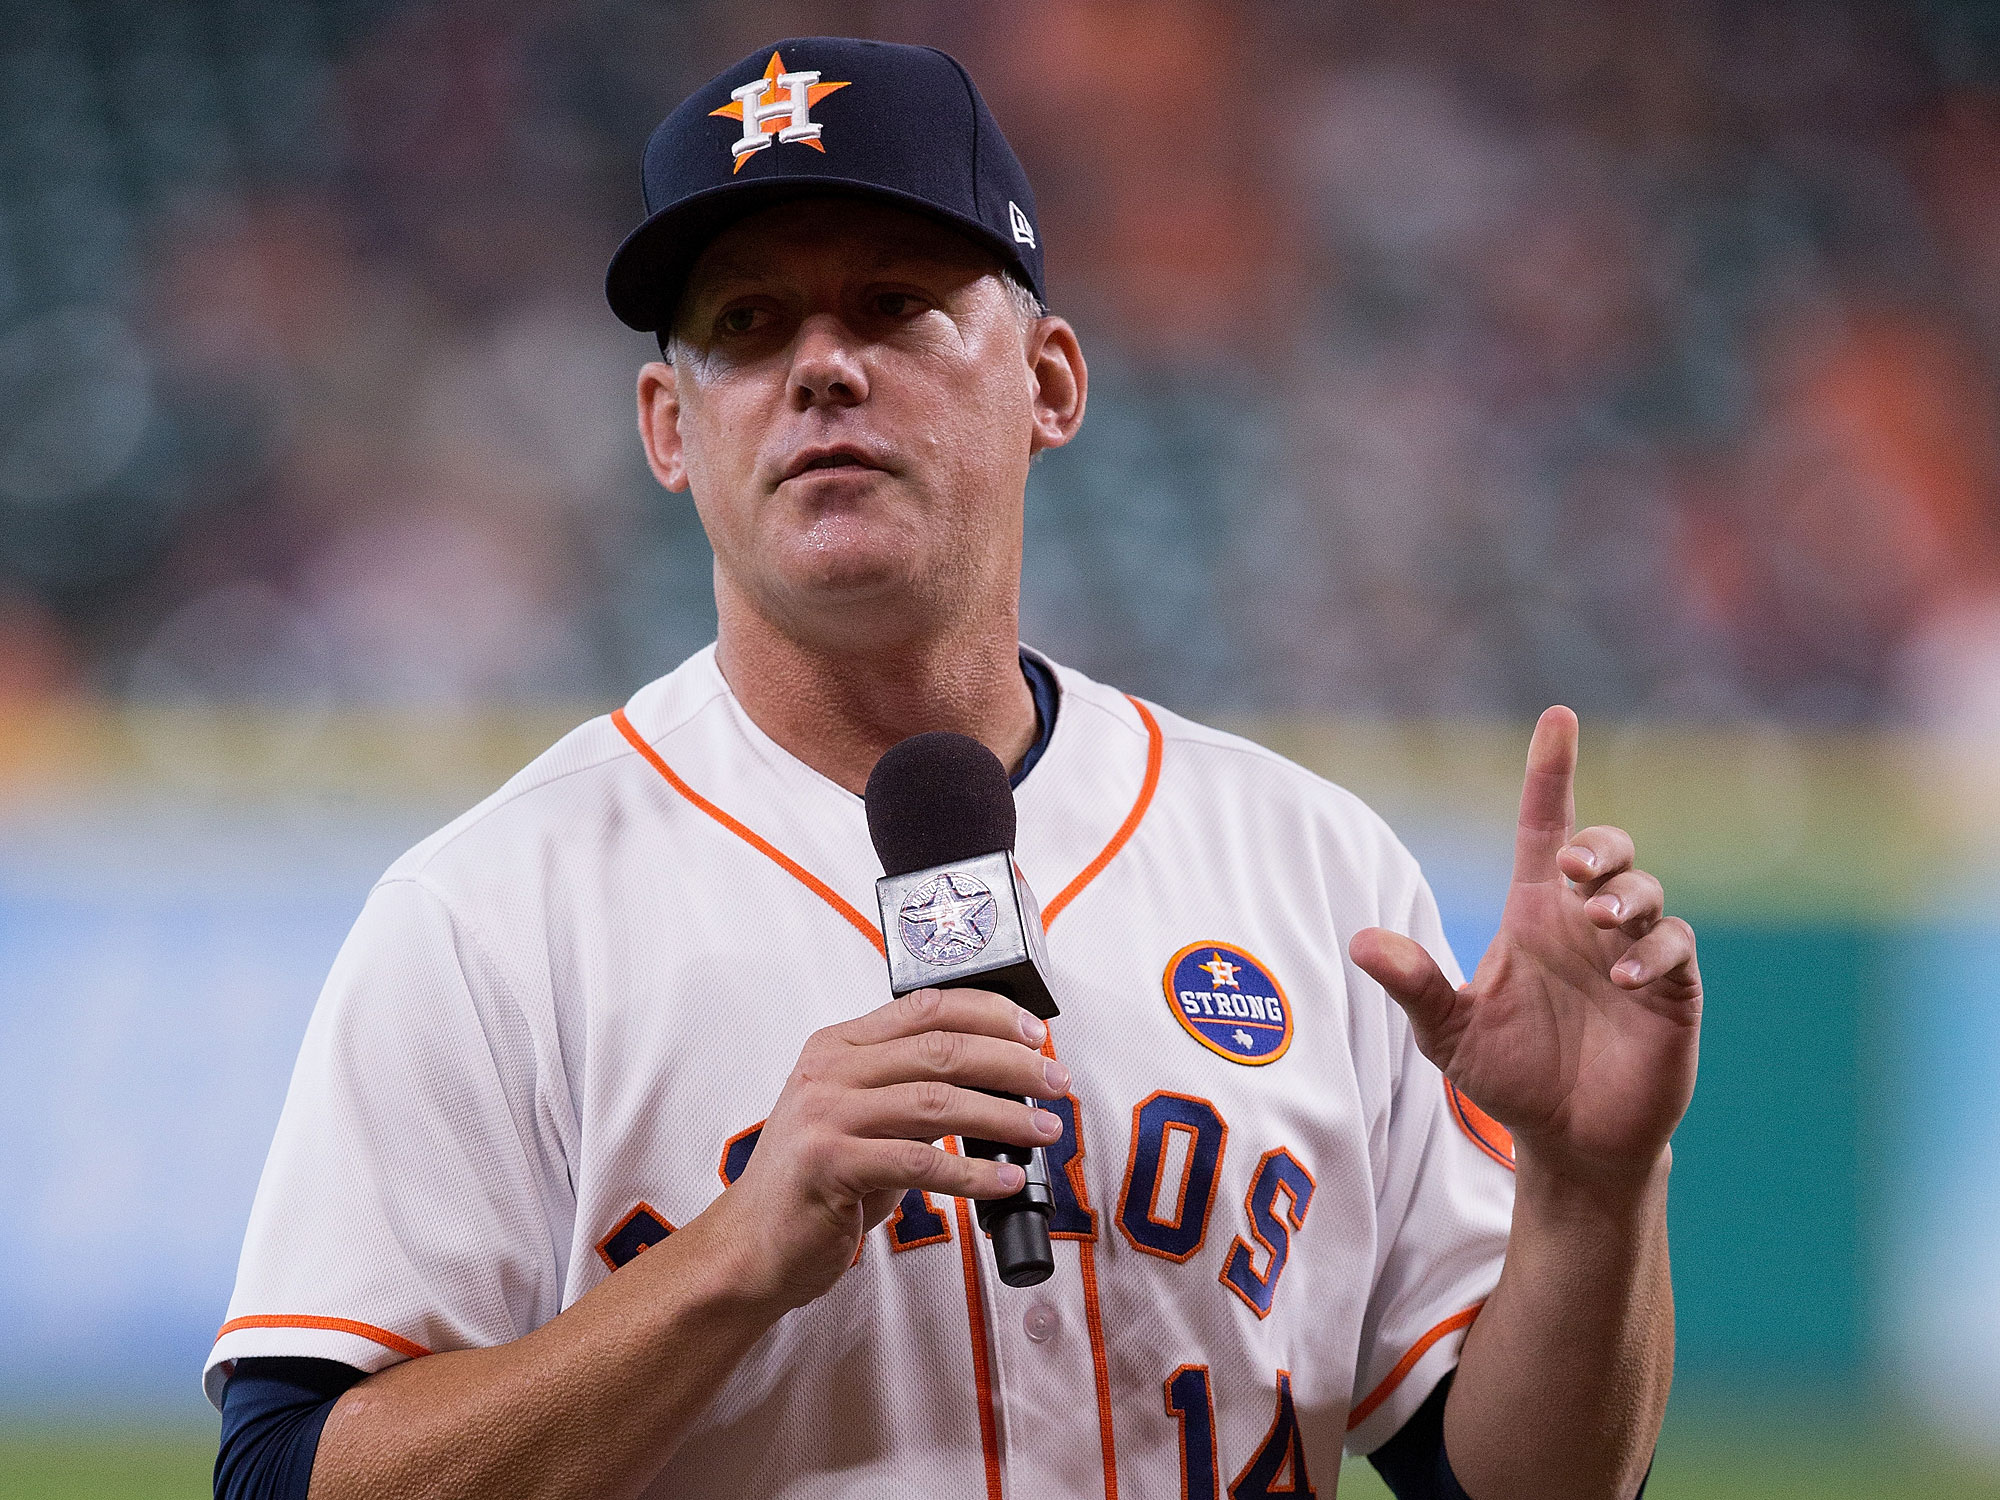 A.J. Hinch, Houston Astros